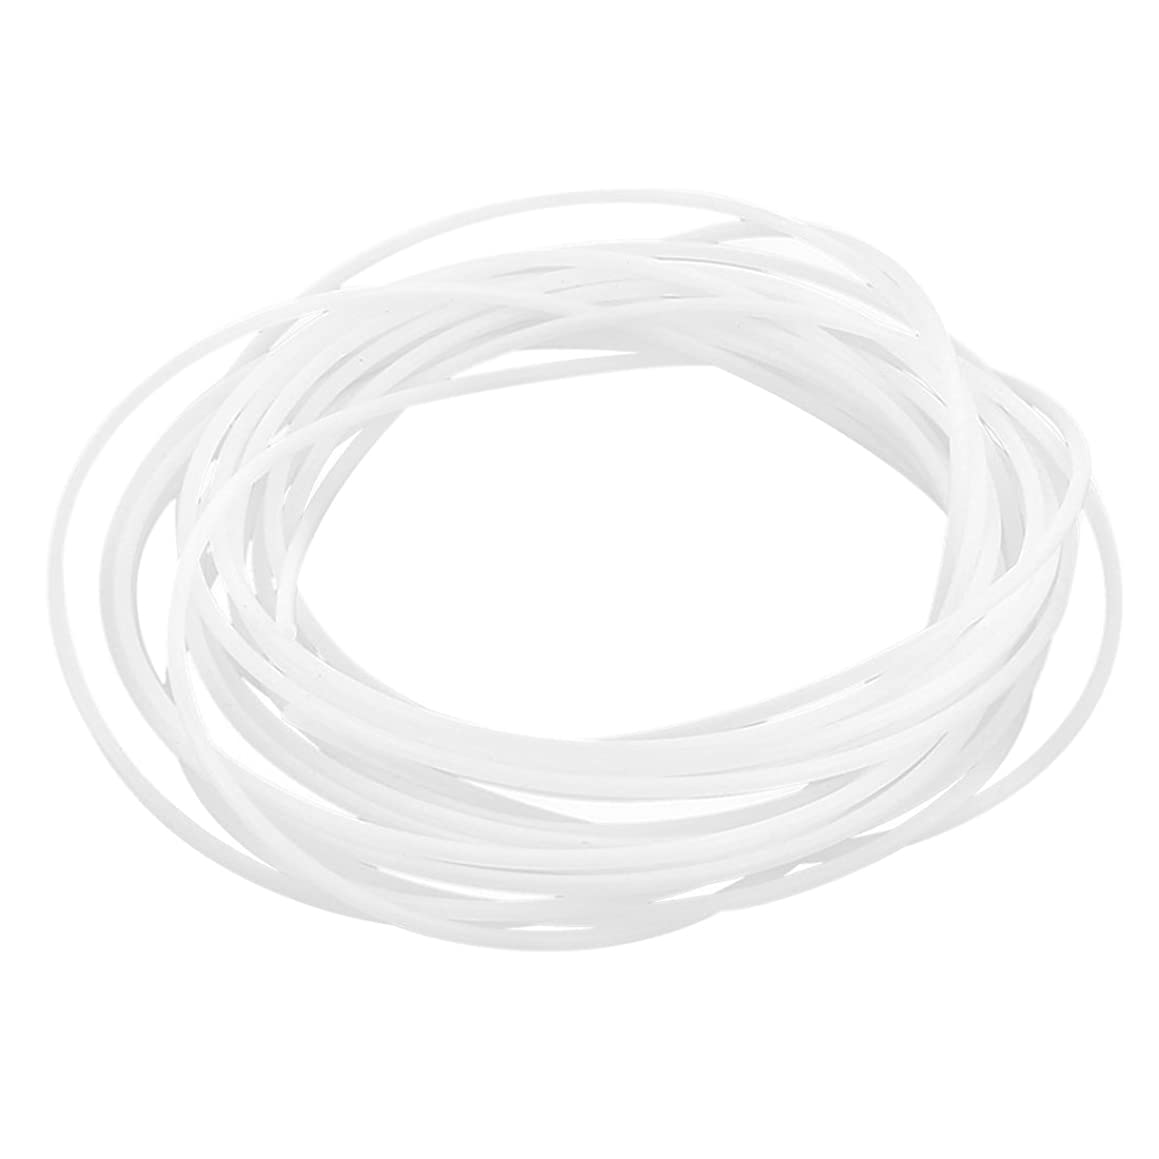 SODIAL 5 meters 3 mm ID 4mm OD PTFE tubing Hose line for 3D printing white